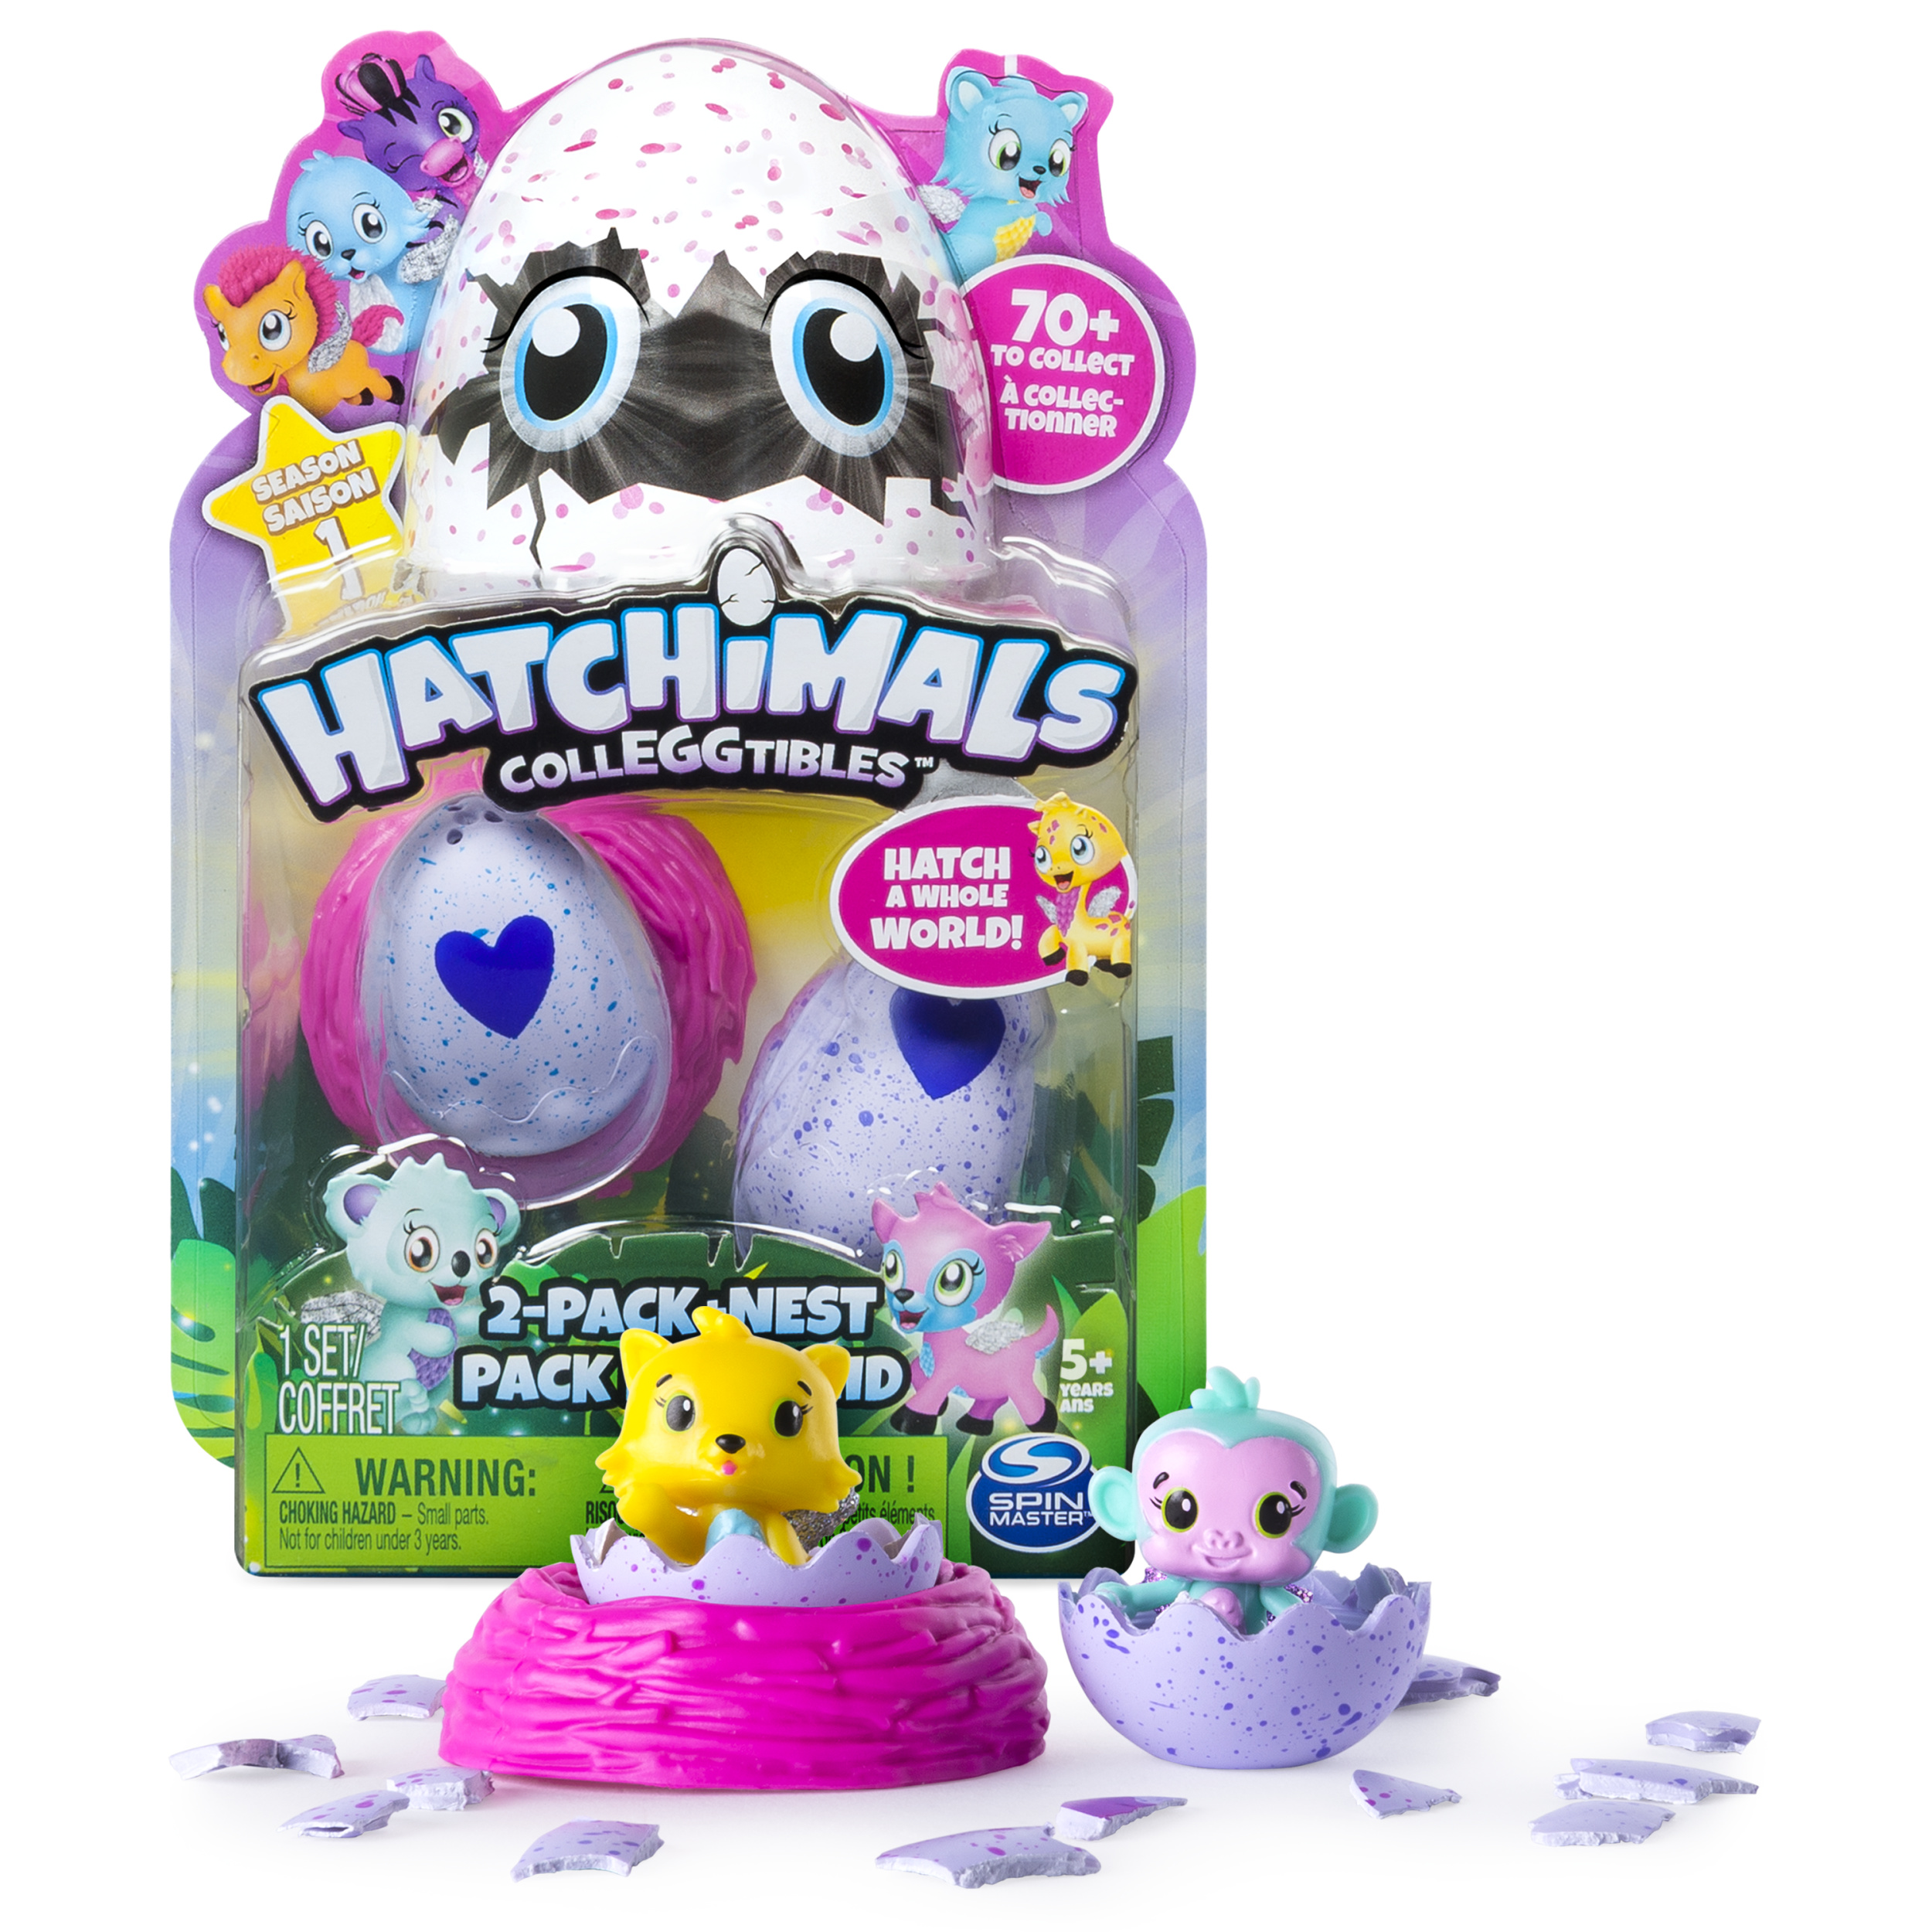 Pickup and Instore - Hatchimals - Colleggtibles - 2-Pack